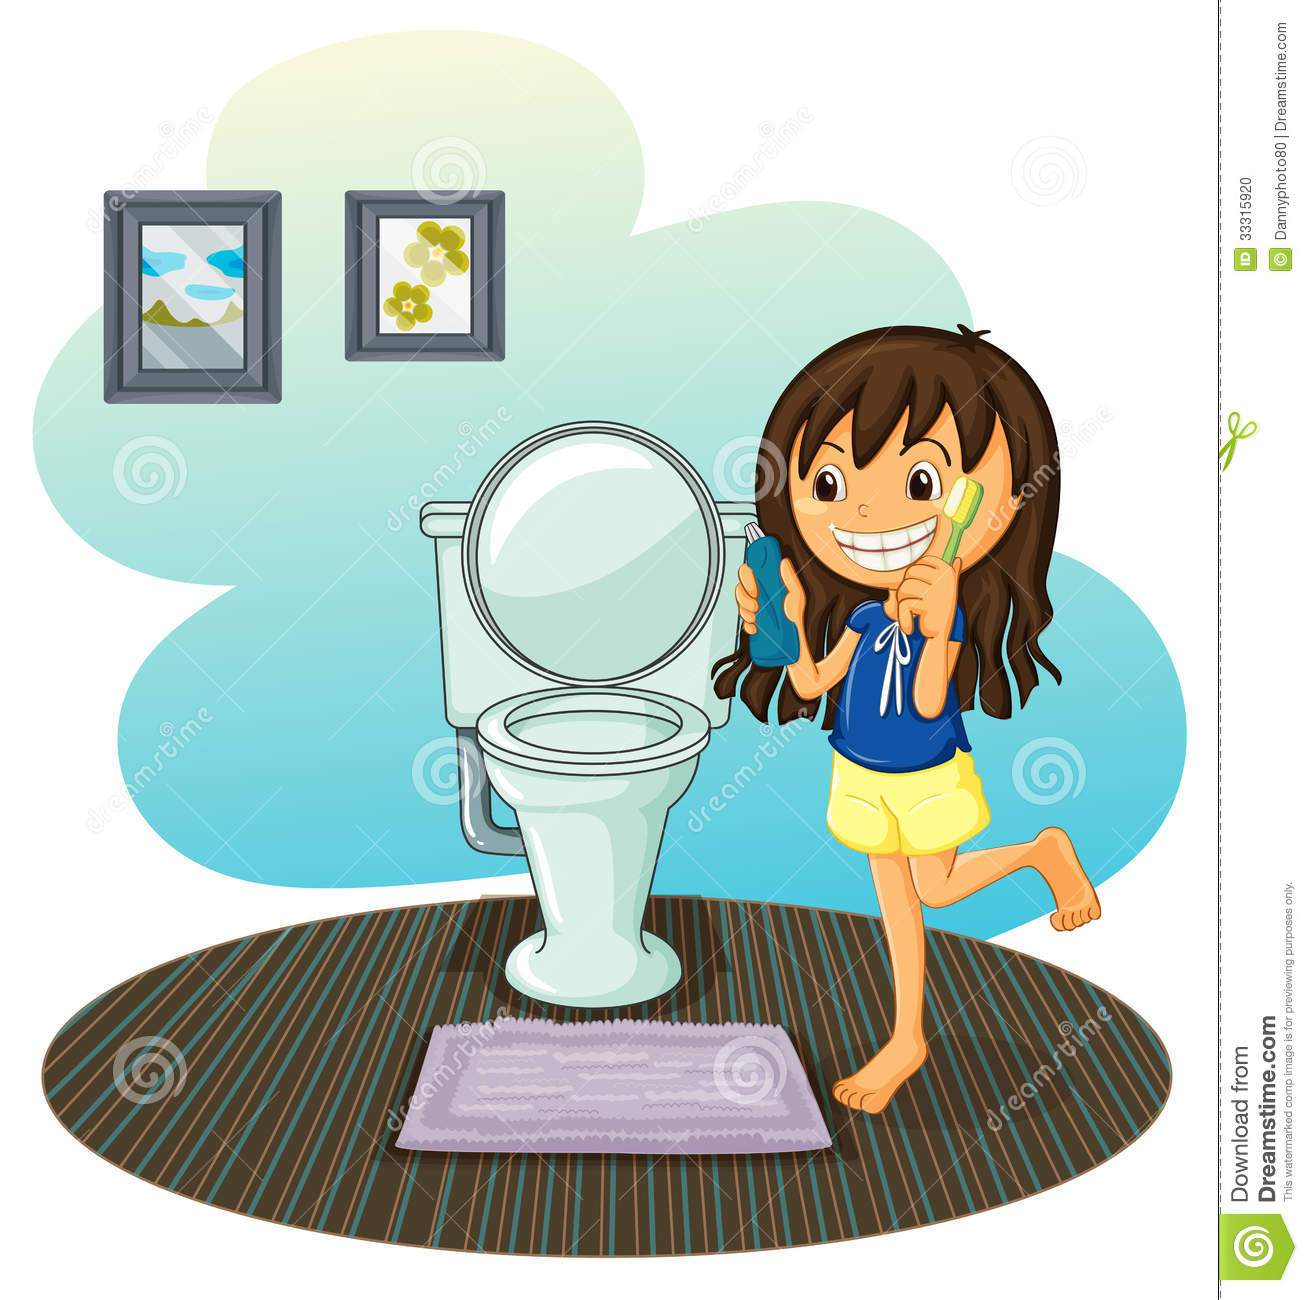 Women clipart cleaning bathroom Clipart girl Clean Cleaning clipart